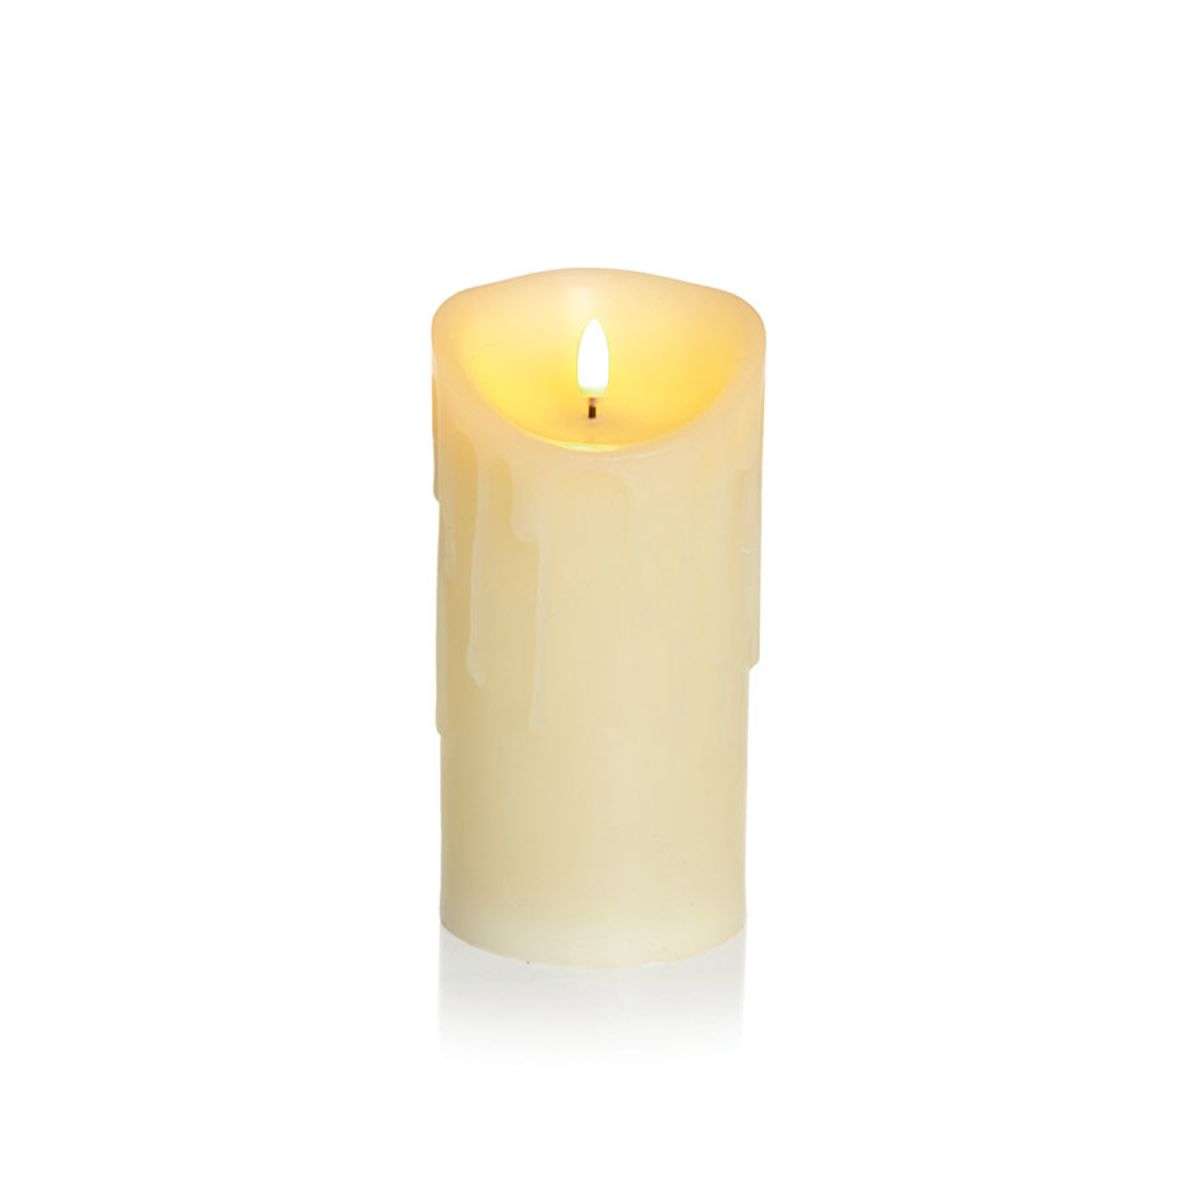 Premier Melted Flicker Candle 18x9cm - Cream